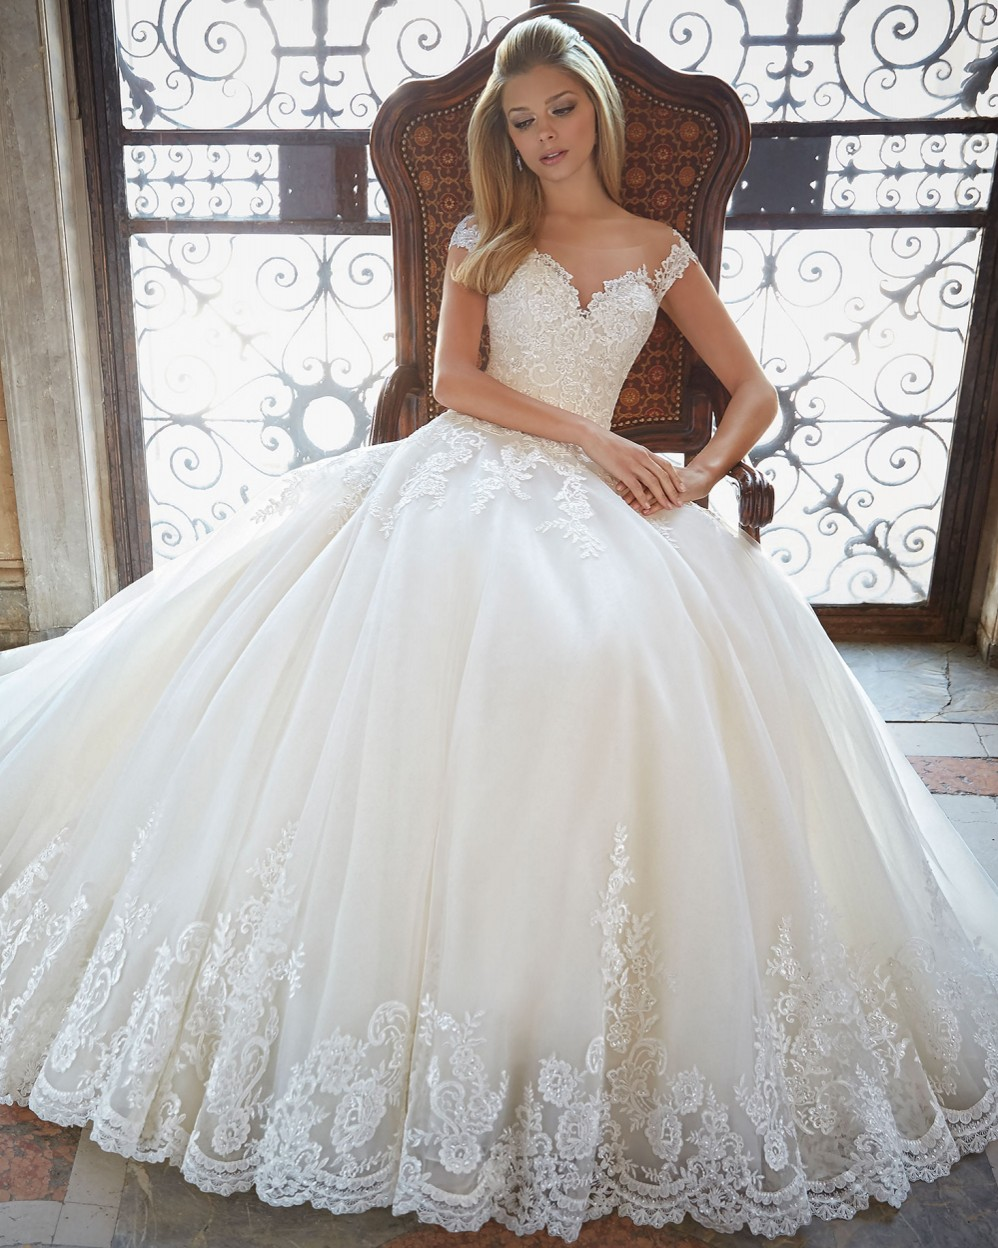 Princess Wedding Dress With Lace Top: Gown wedding dress simple lace ...